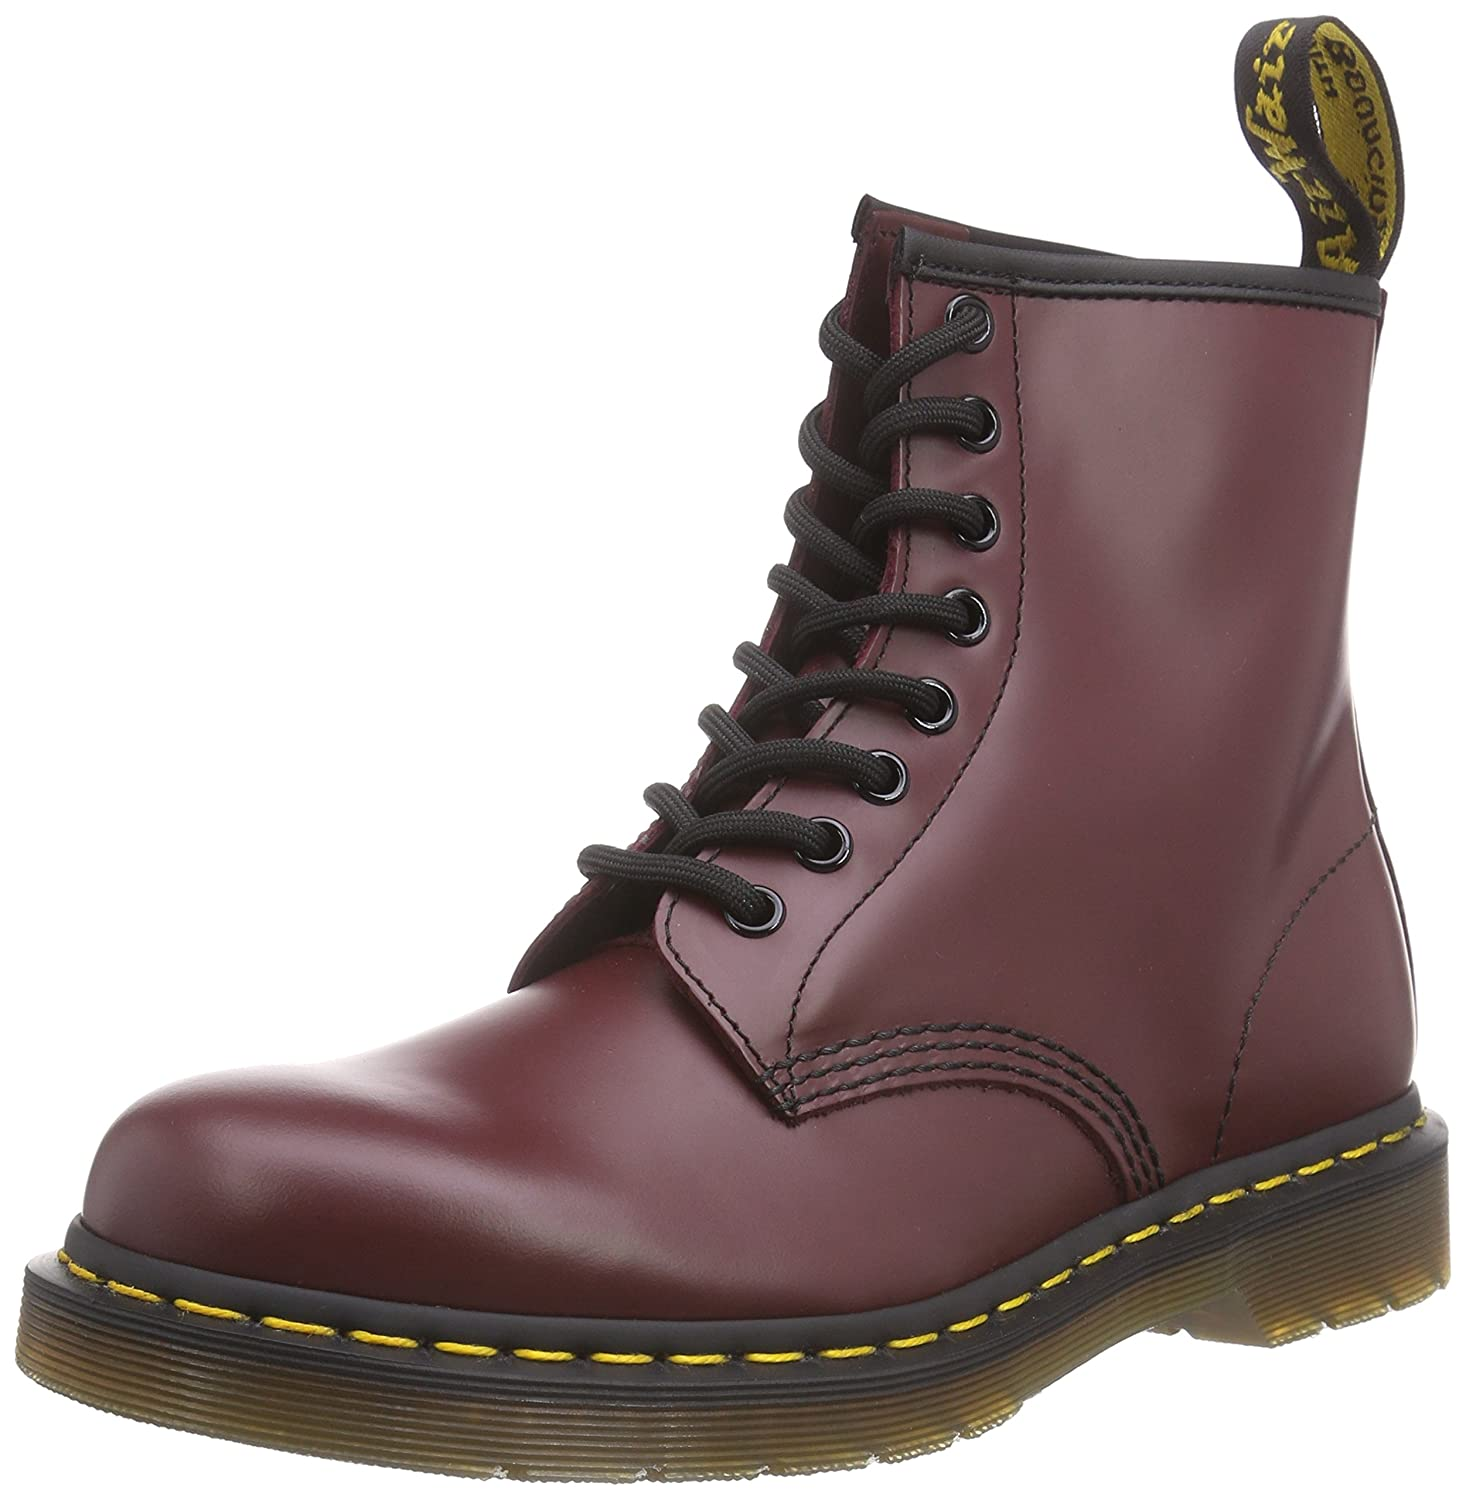 Dr. Martens 1460 Originals Eight-Eye Lace-Up Boot B0033C8WRA 7 M UK / 8 D(M) US|Cherry Red